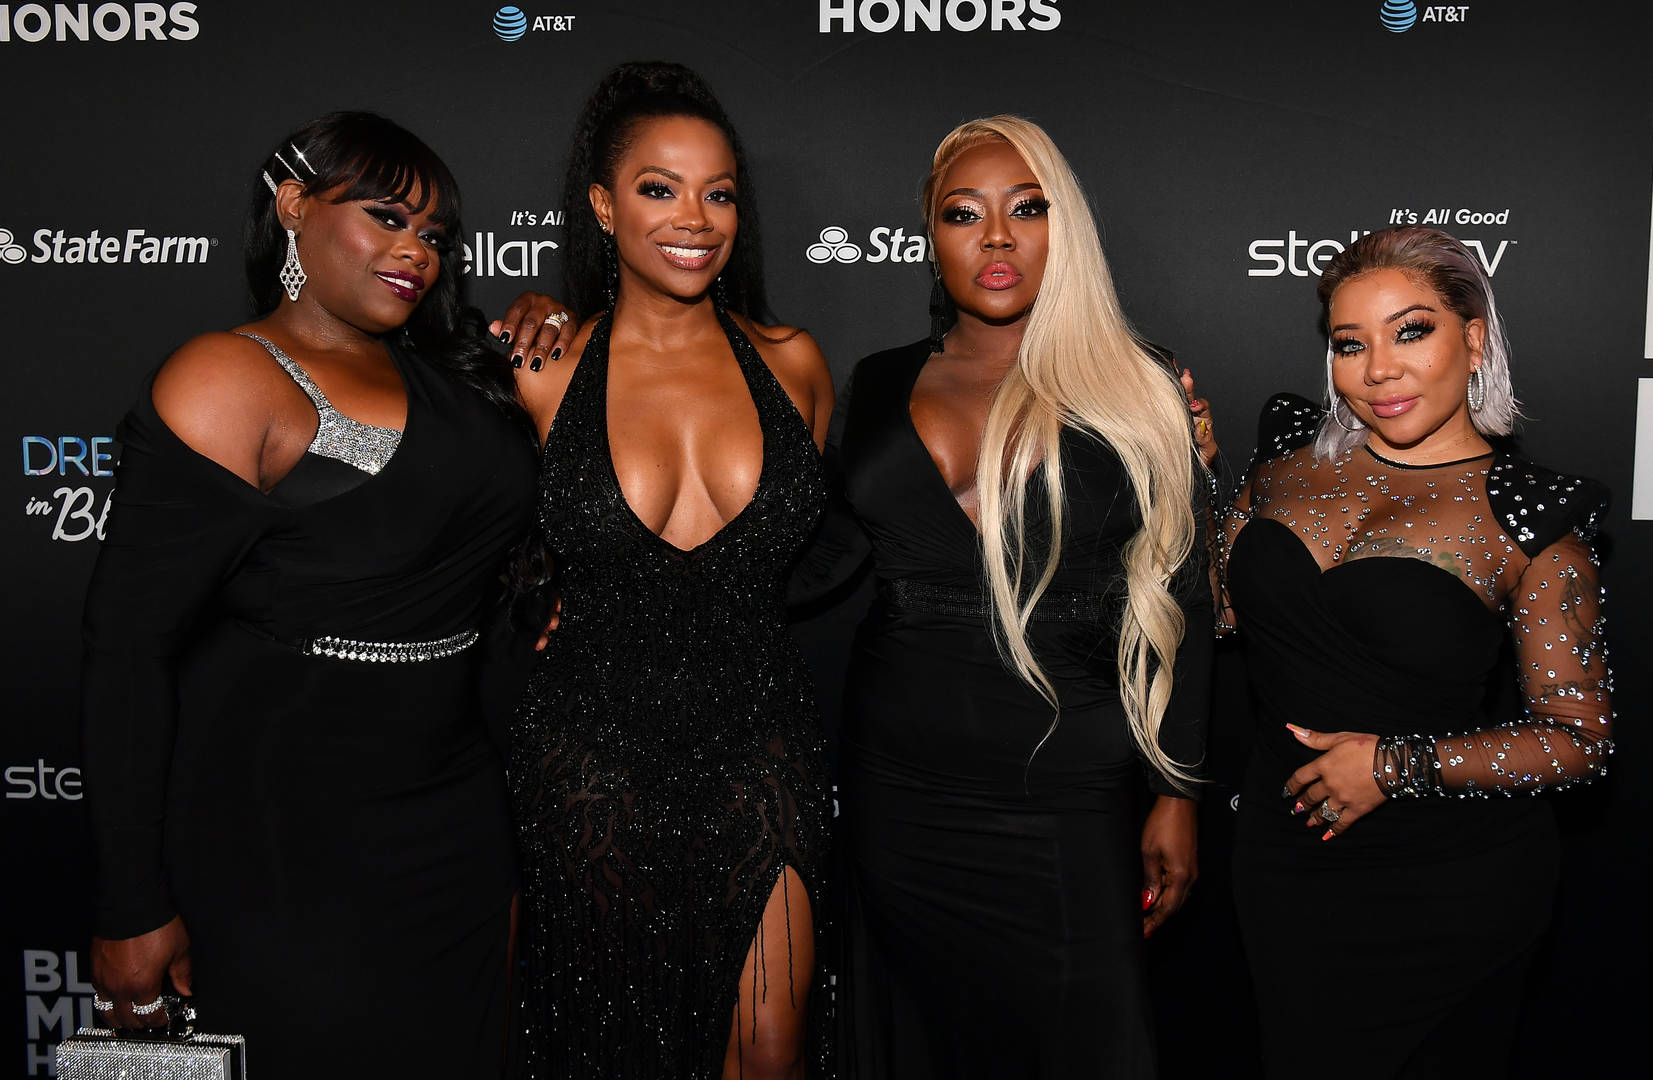 Tiny, Xscape, Cypress Hil, VladTV, Jermaine Dupri, Lawsuit, Hummin Comin At Cha